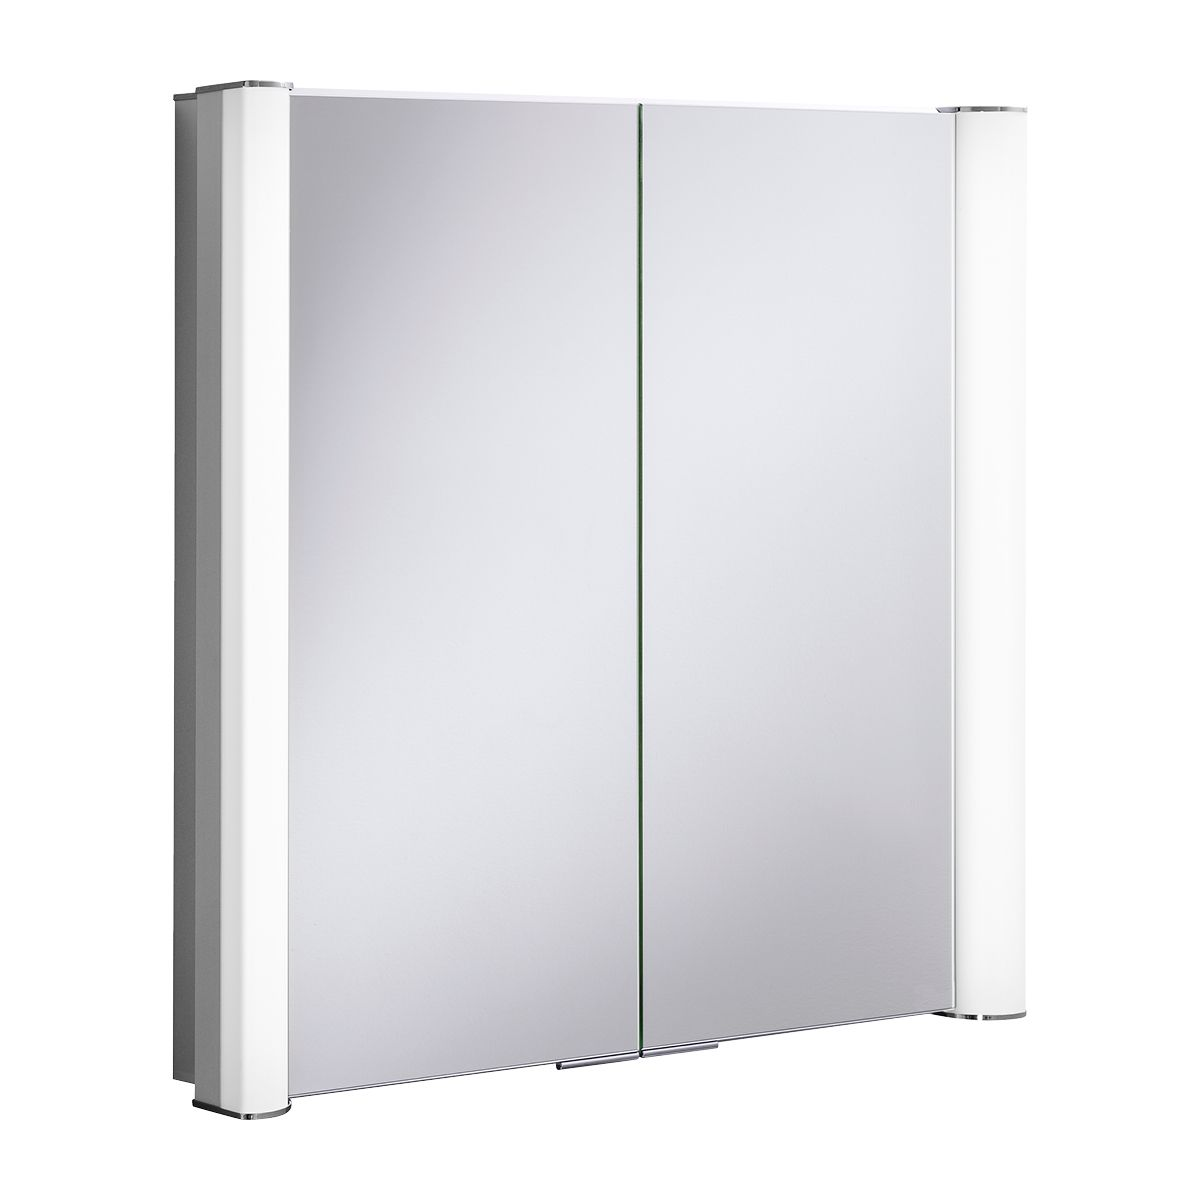 bathroom mirror cabinets cape town - Bathroom Cabinets Cape Town